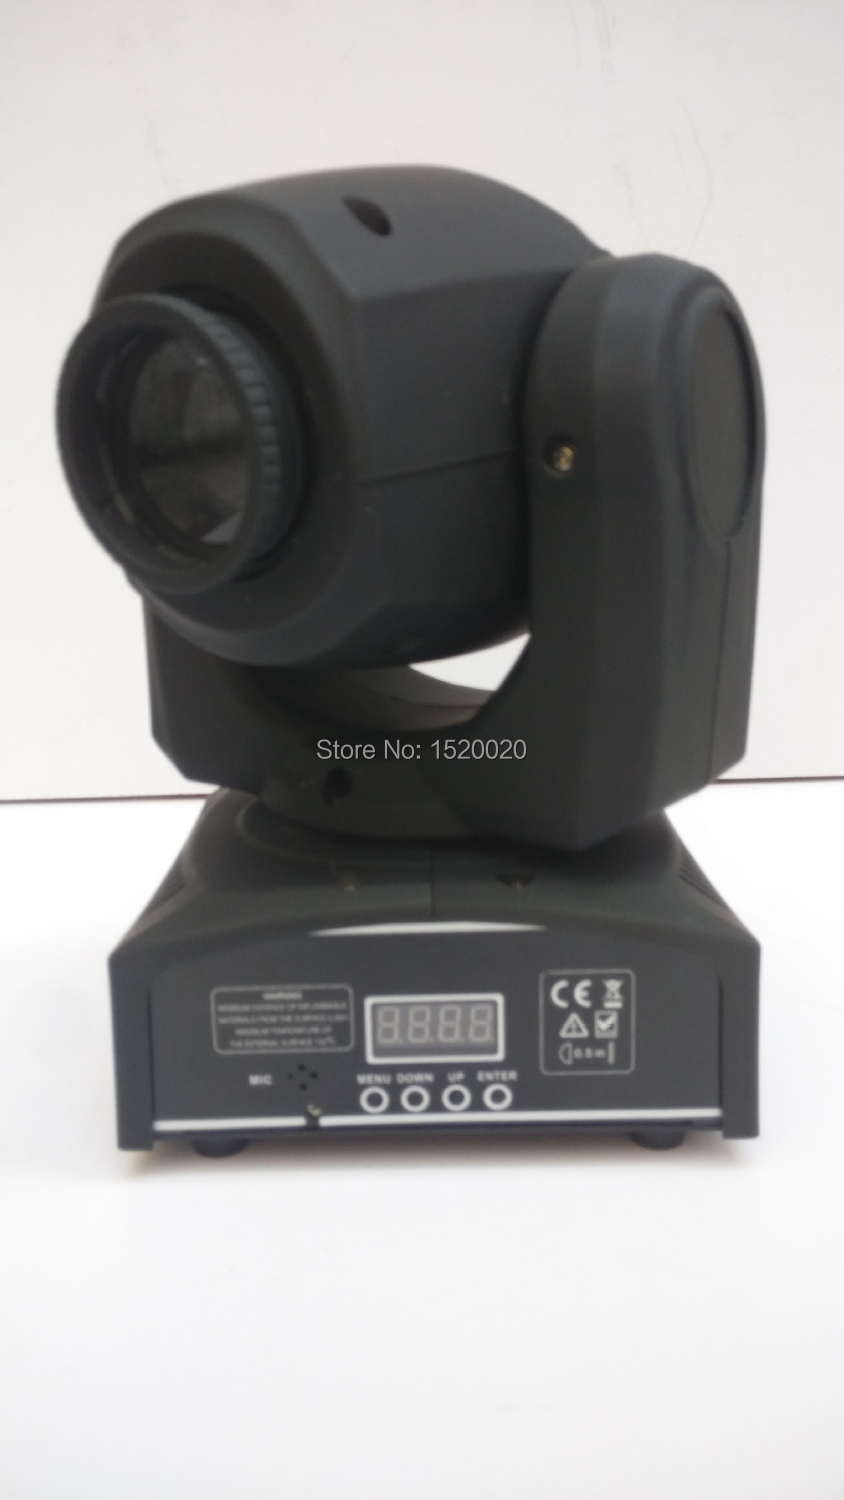 Hot 4xLOT 30w Gobo Spot mini Light Moving Head Gobo Beam Light 7 Gobo + 7 Color Mini moving head Dj Disco Lighting